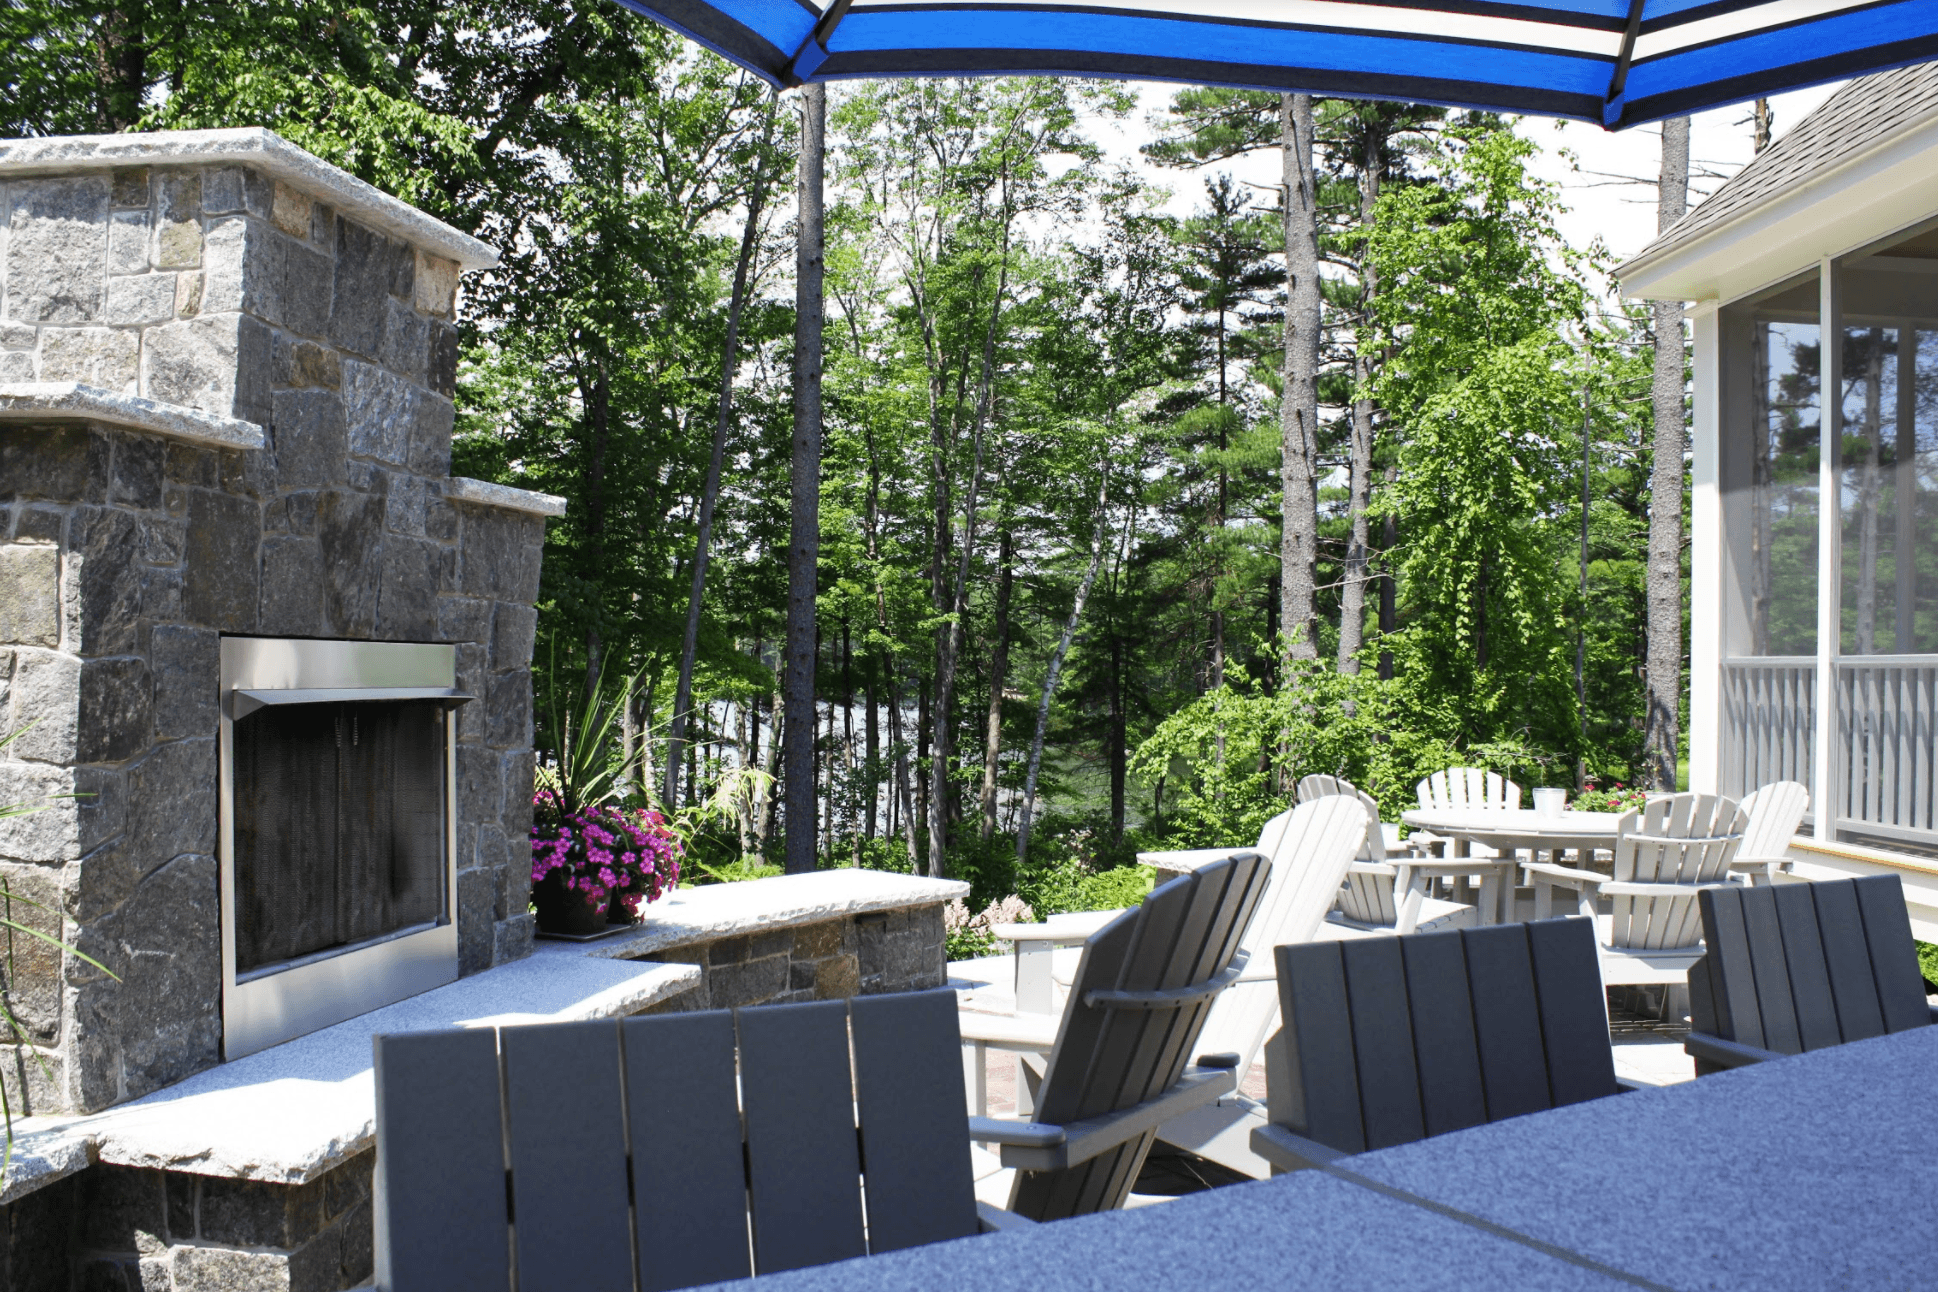 Landscaper in Milford, NH with top outdoor fireplace ideas